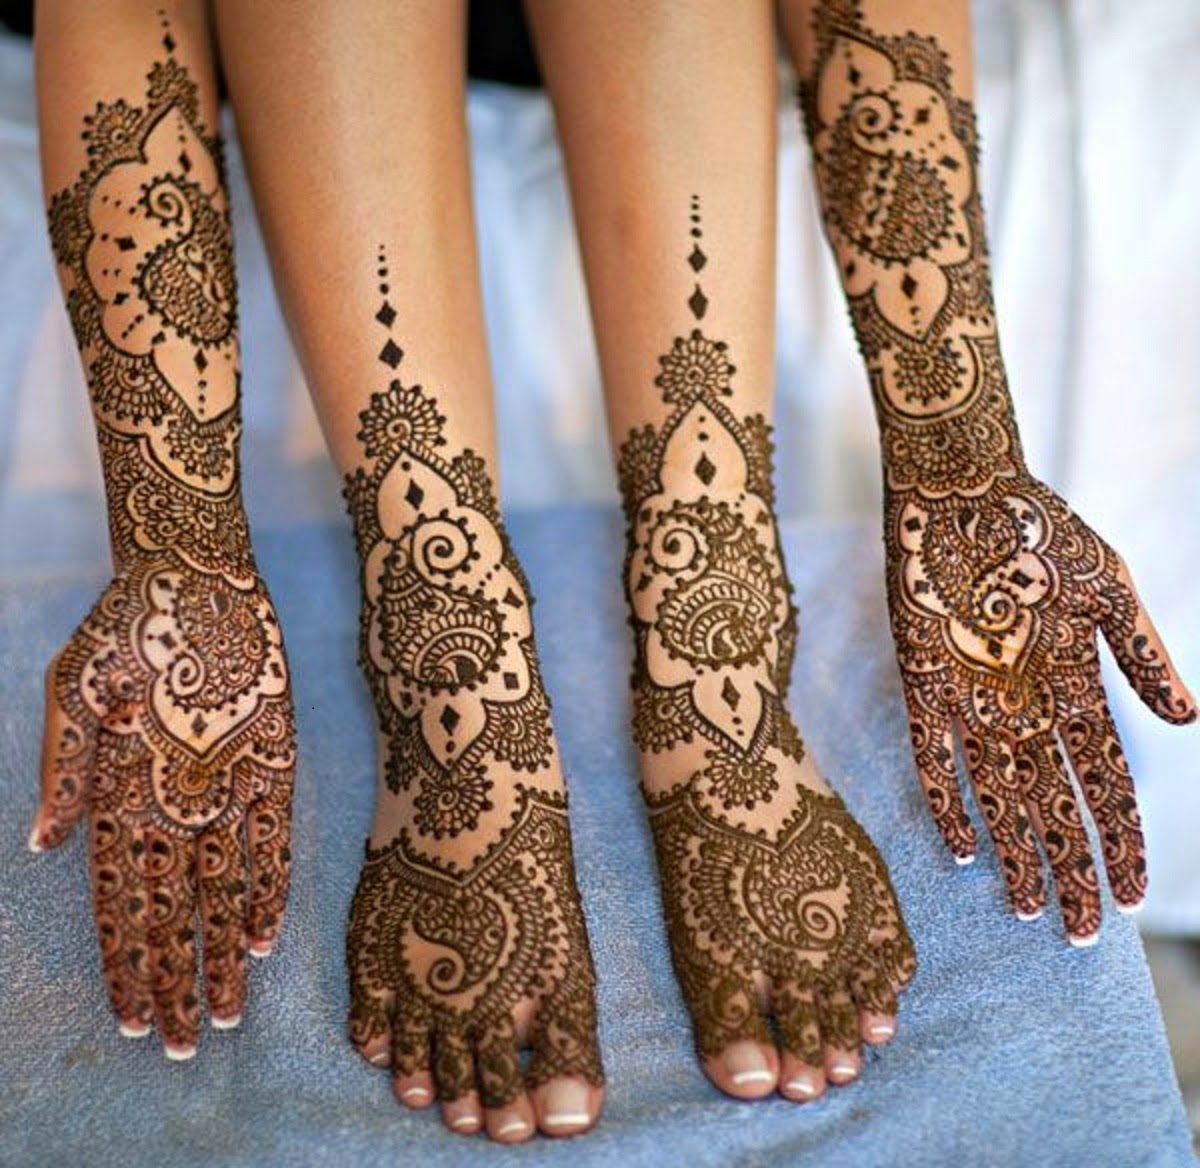 Feet Mehndi Designs Bridal : Bridal mehndi designs new feet and hand